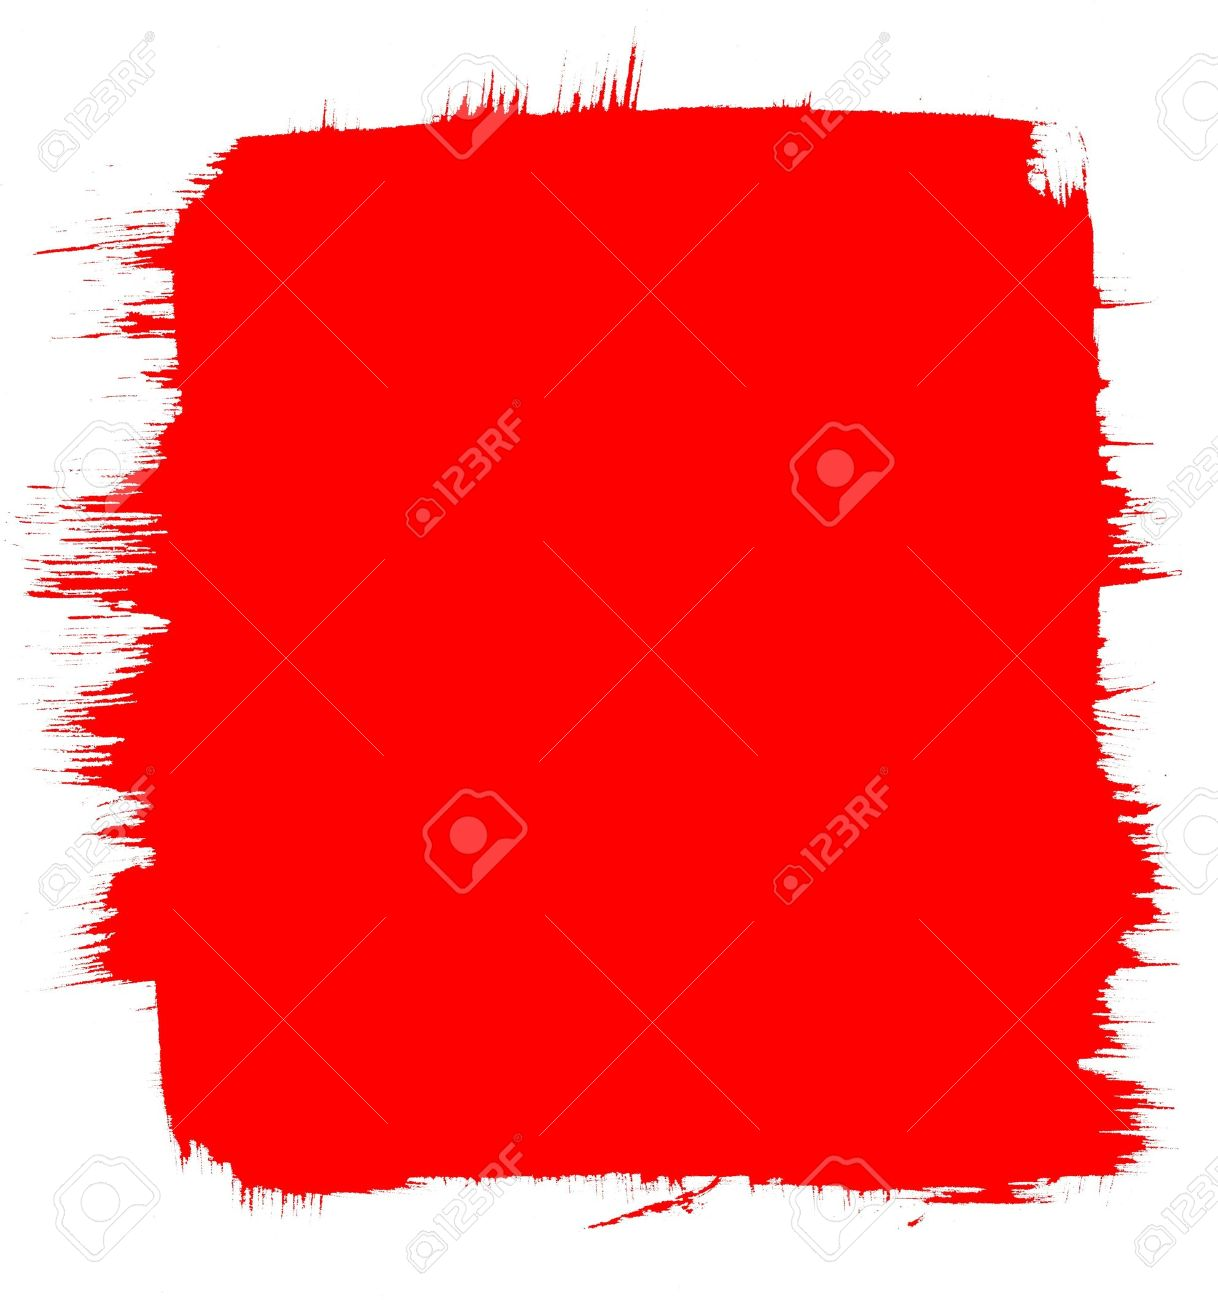 A red background with a brush-stroke border. Stock Photo - 10393373